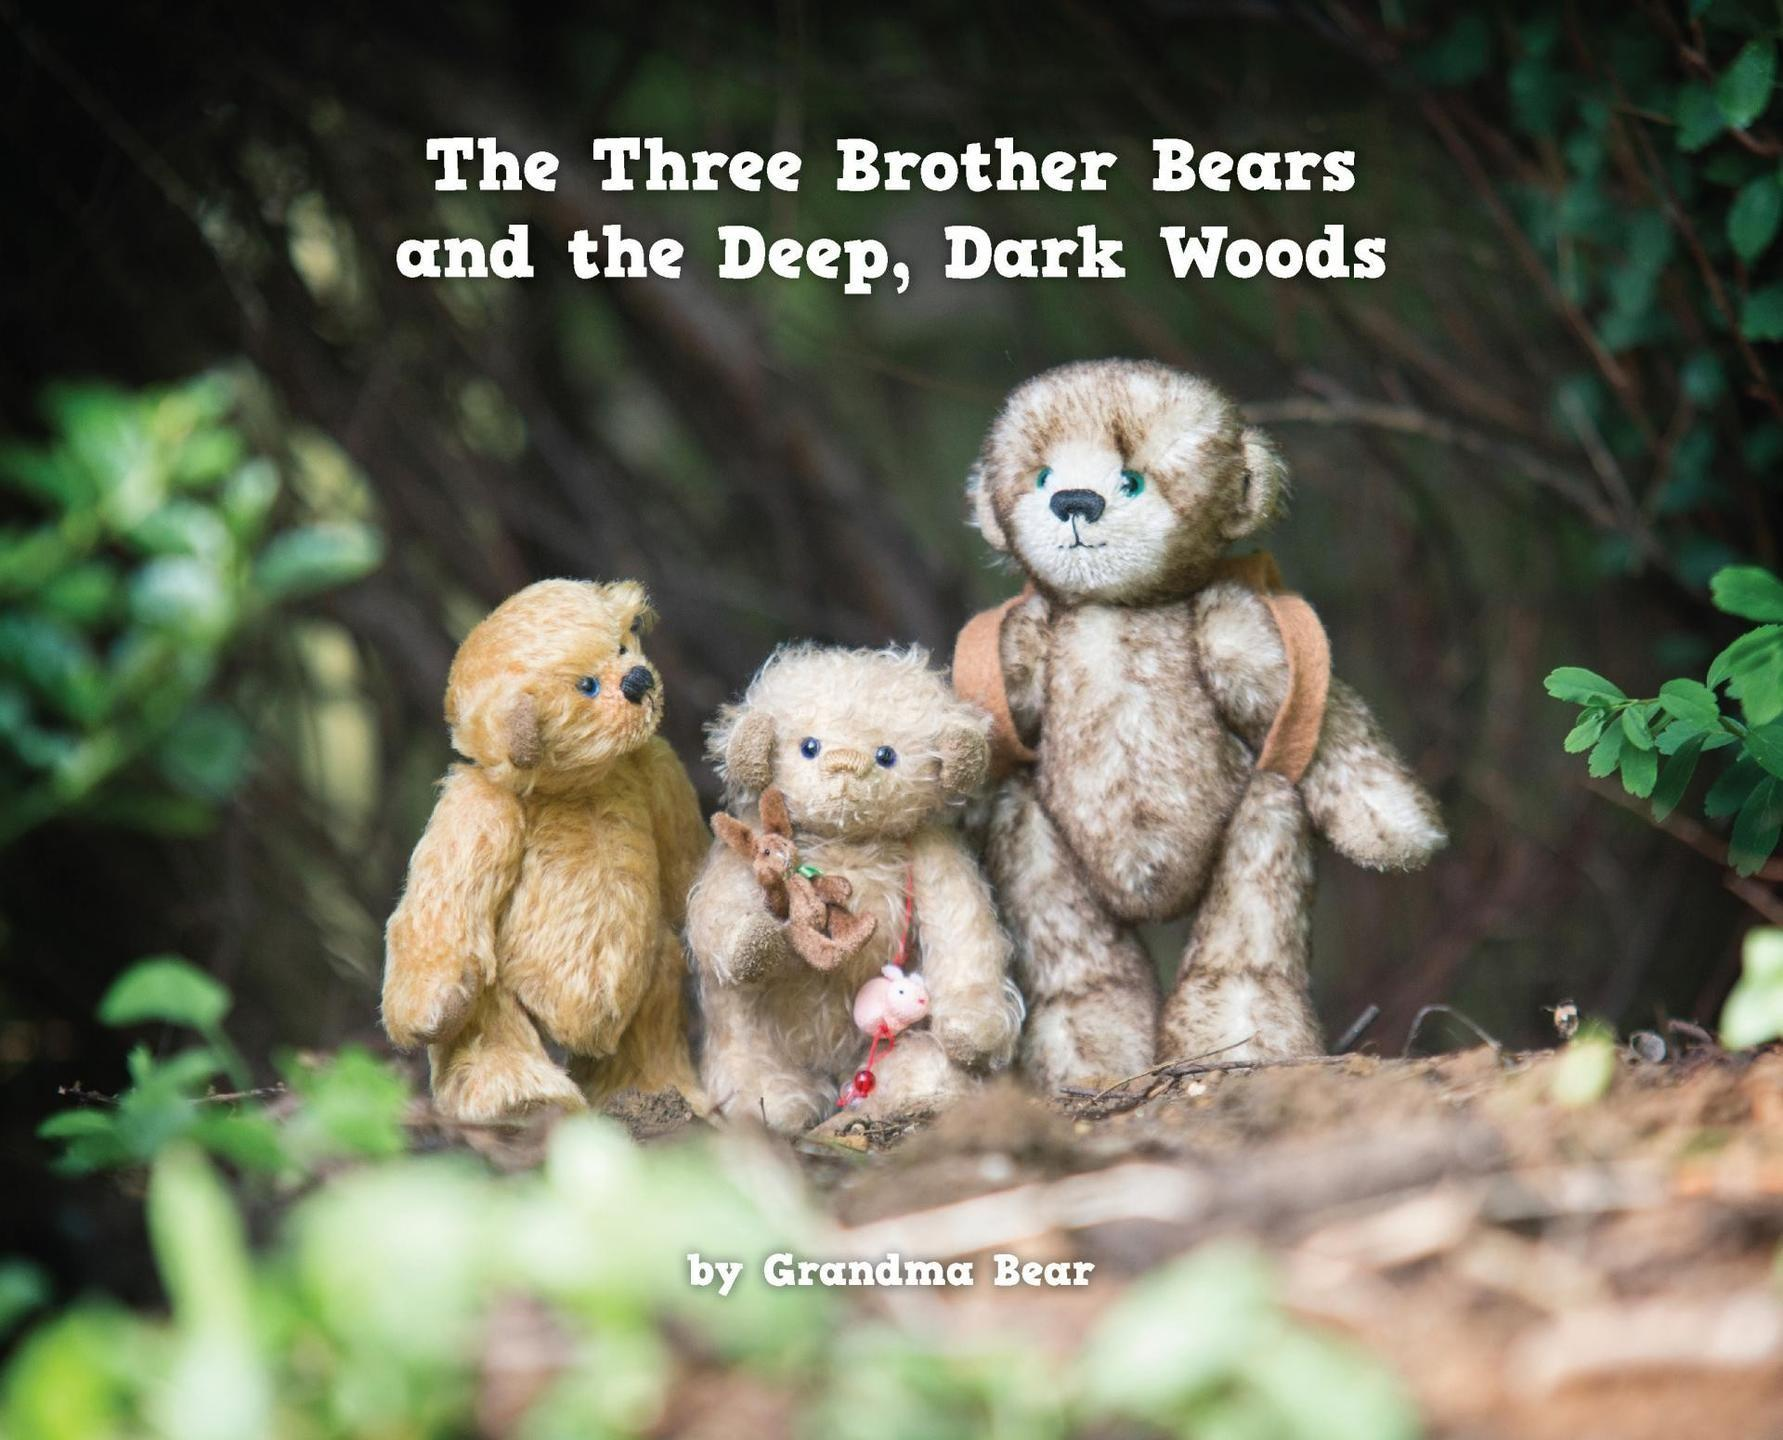 The Three Brother Bears and the Deep, Dark Woods